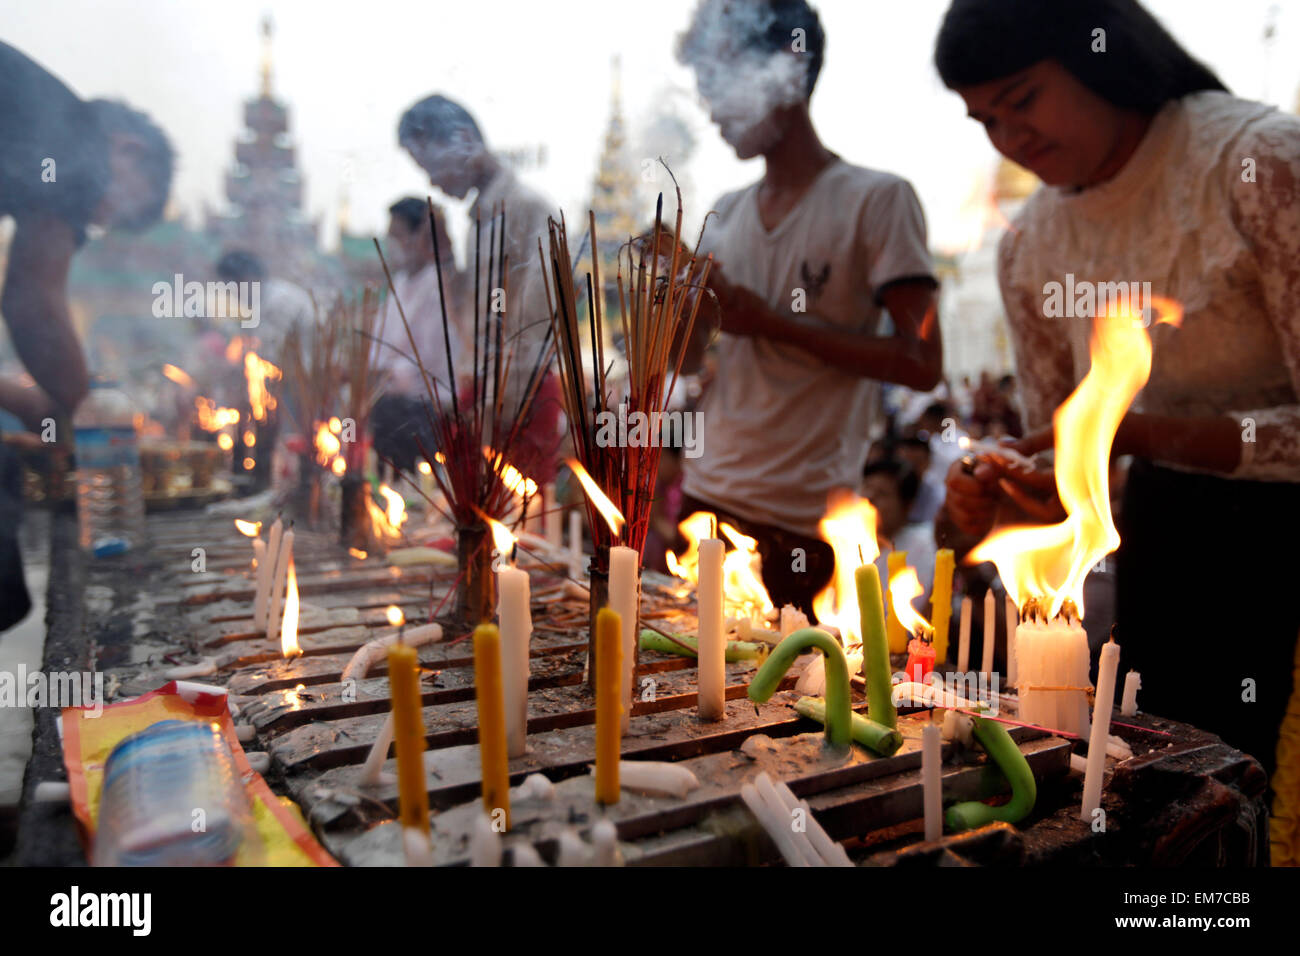 Yangon, Myanmar  17th Apr, 2015  People light candles and